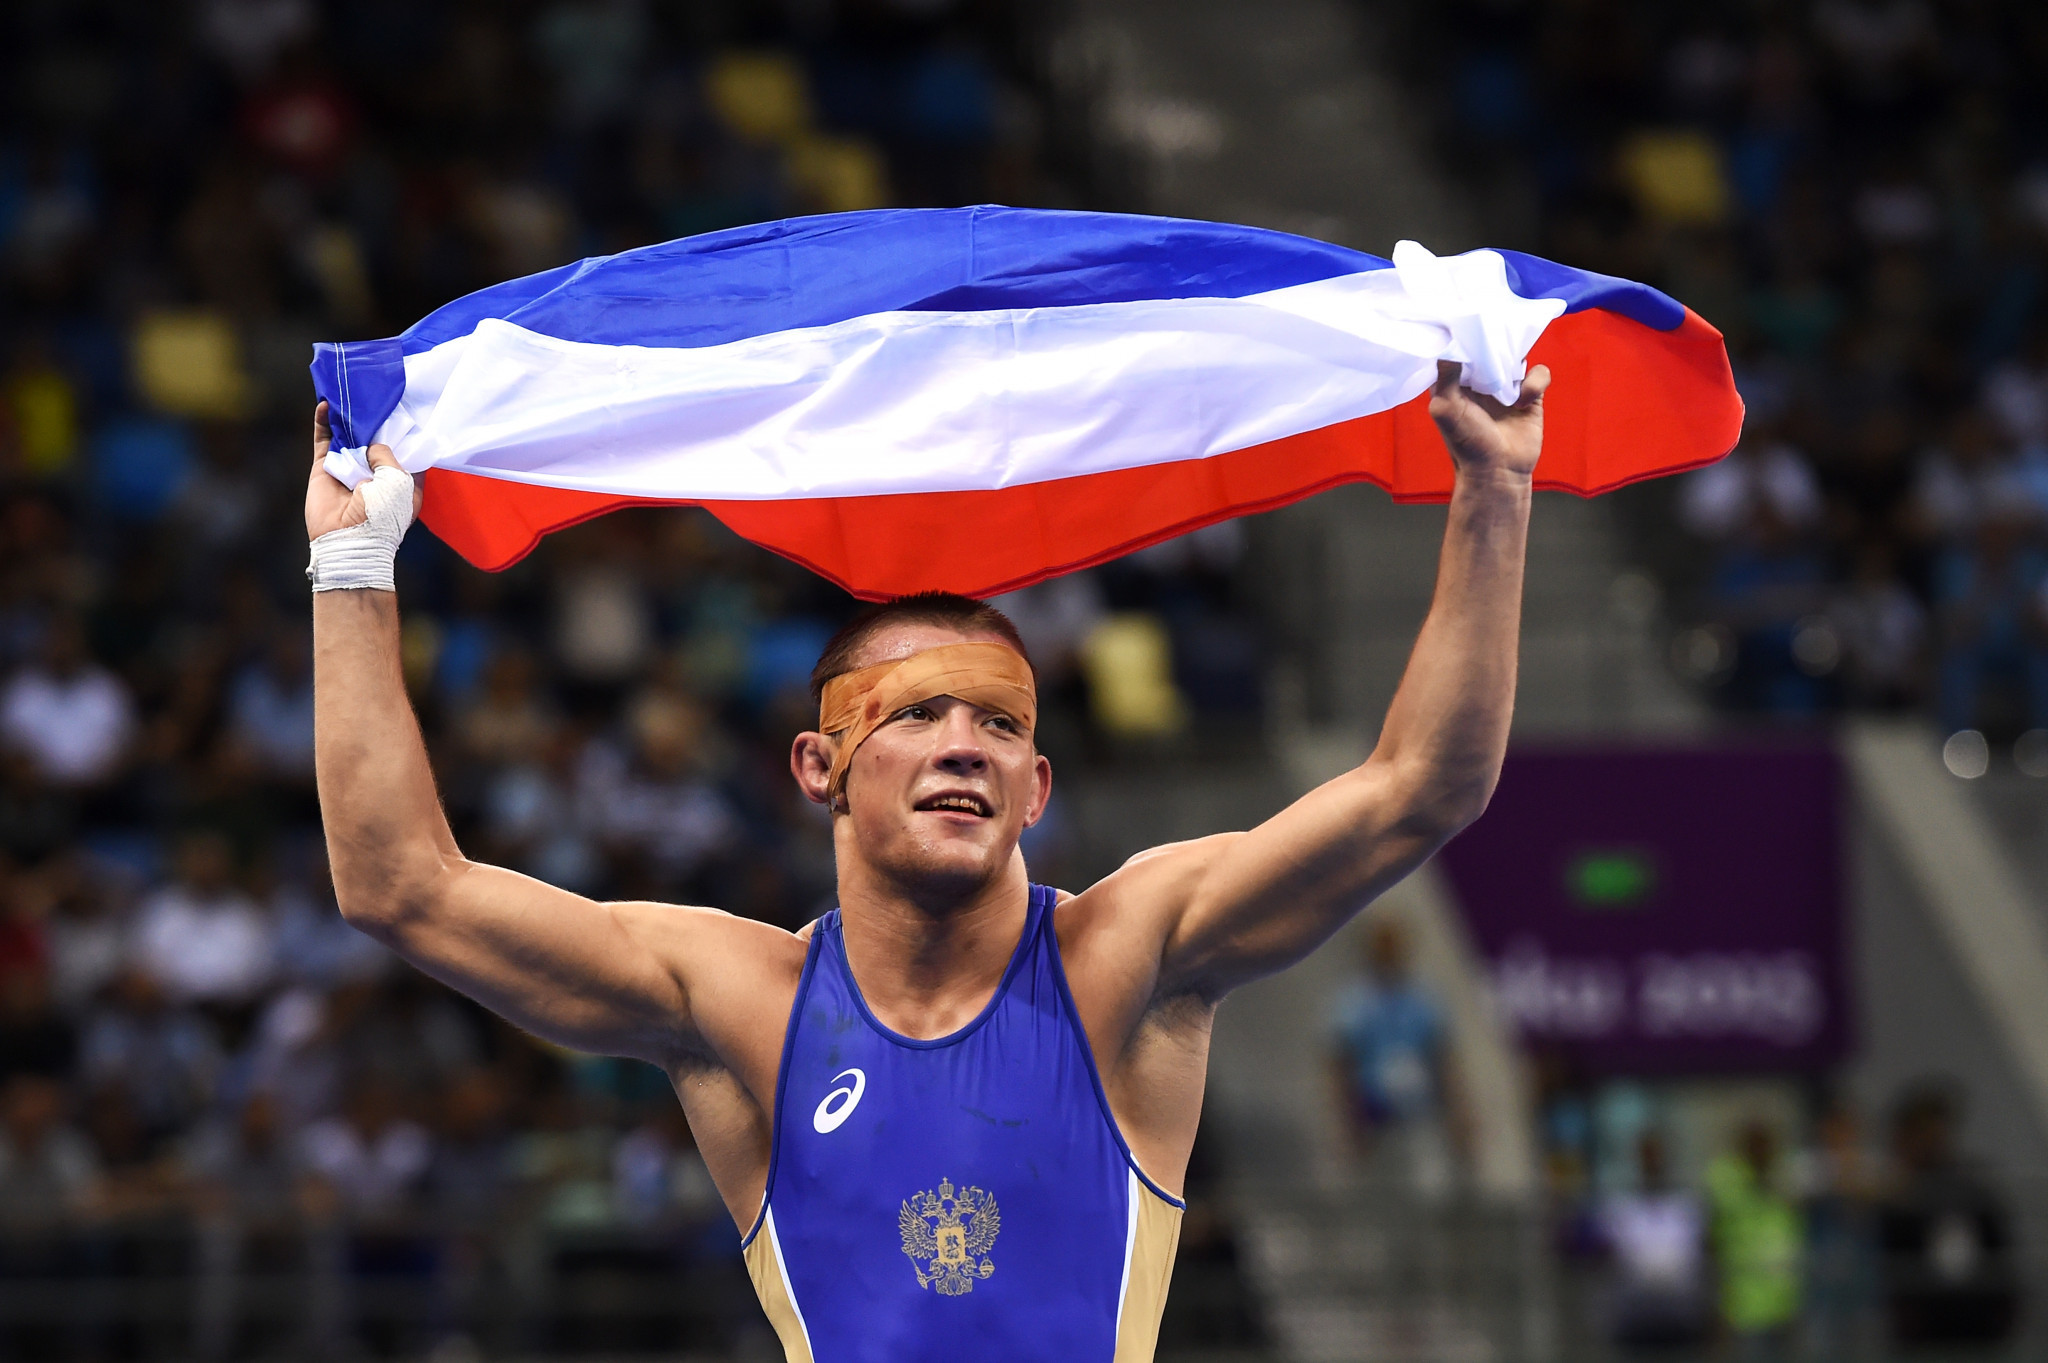 Hosts Russia dominate day three of European Wrestling Championships in Kaspiysk